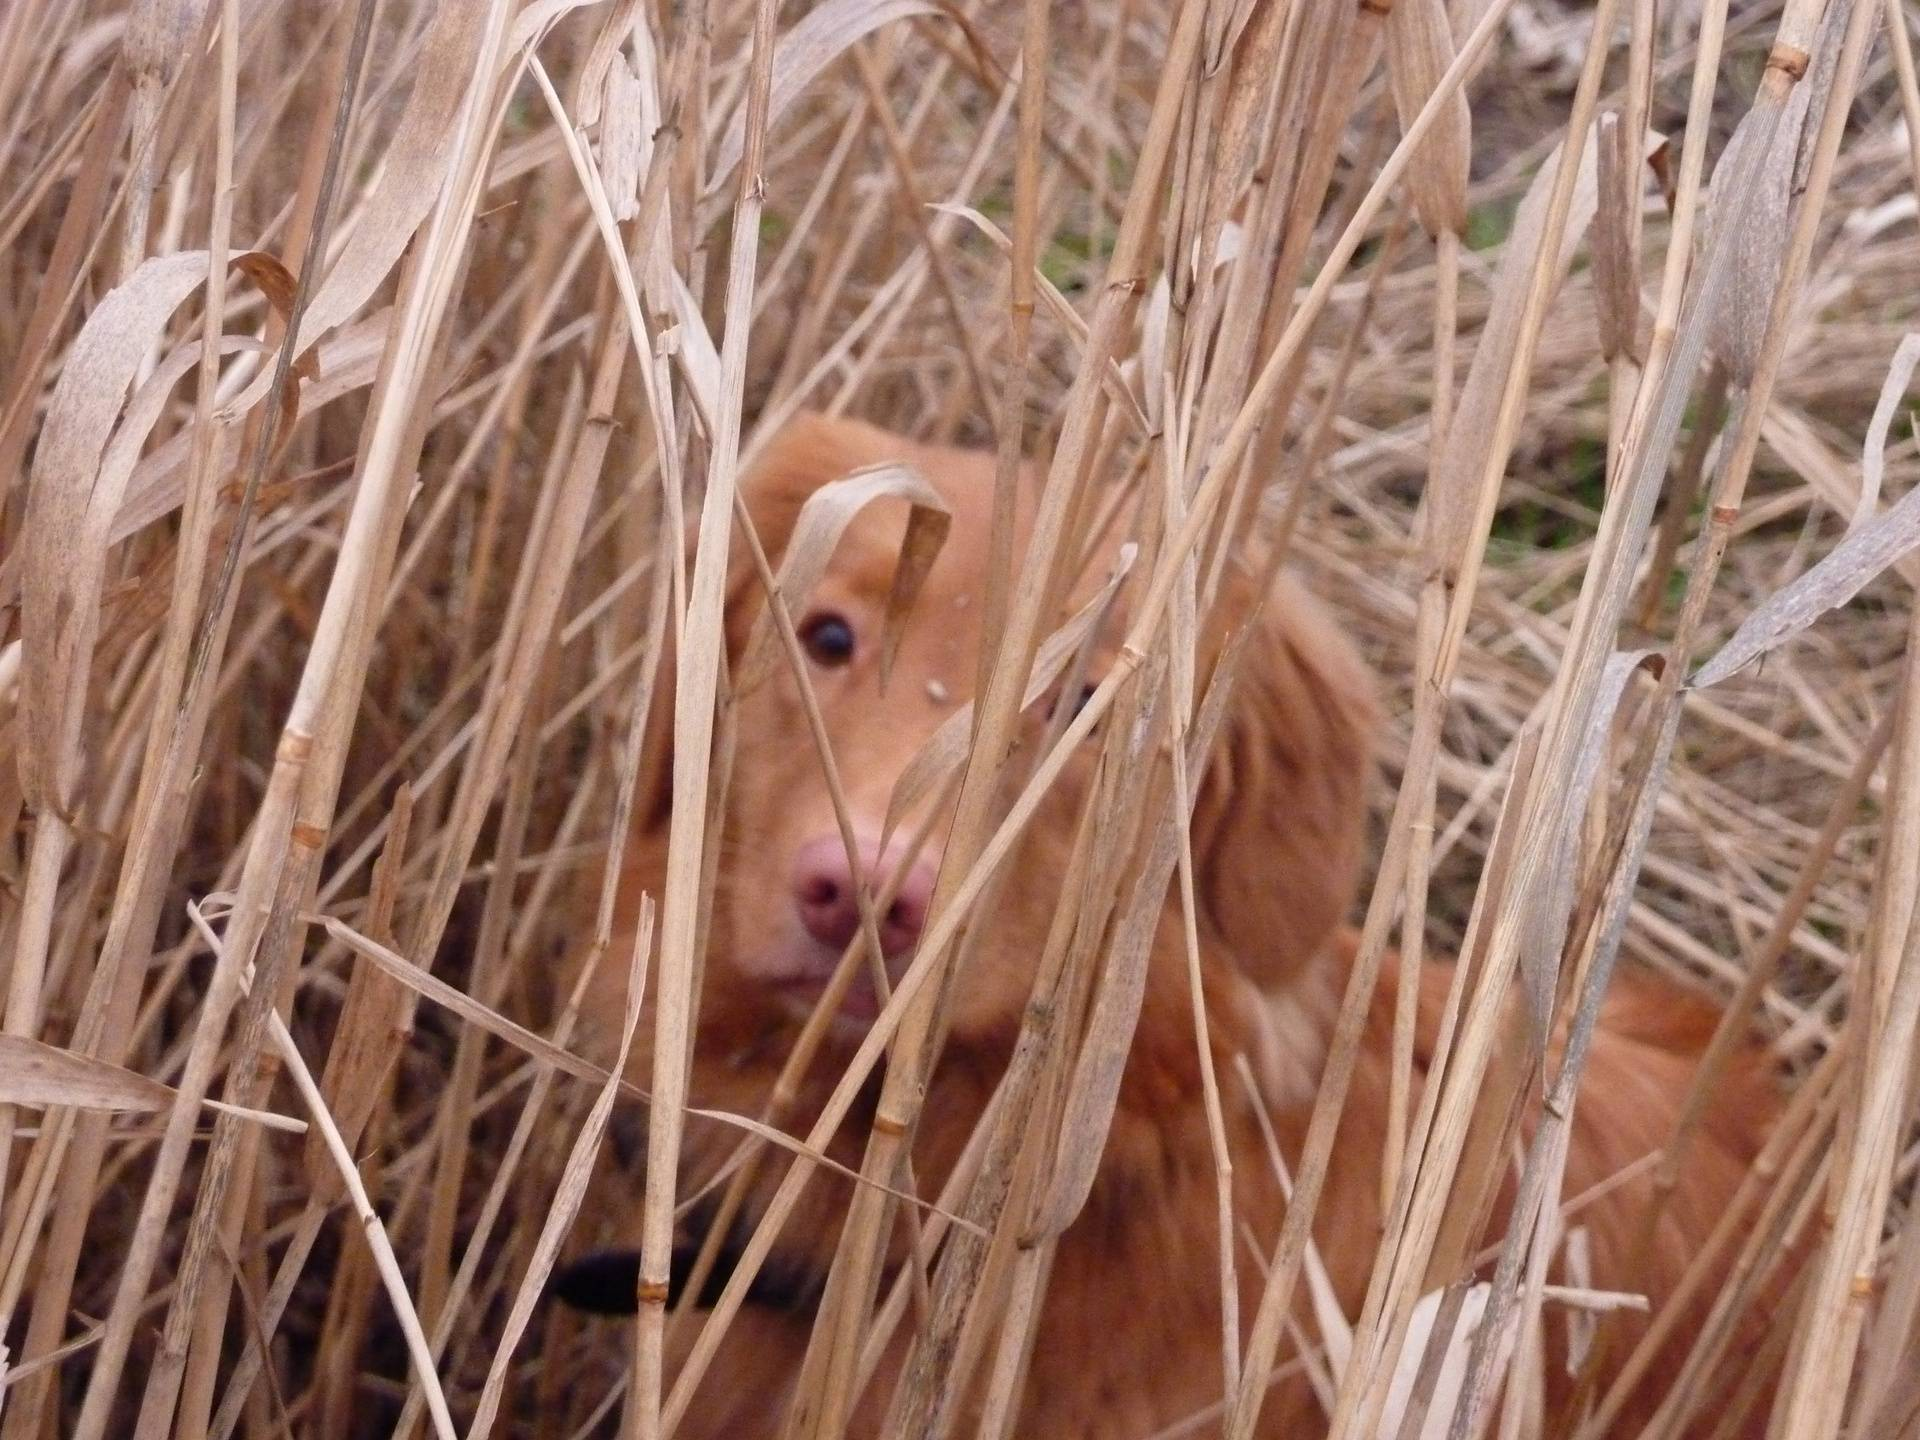 Us tollers don't need a blind